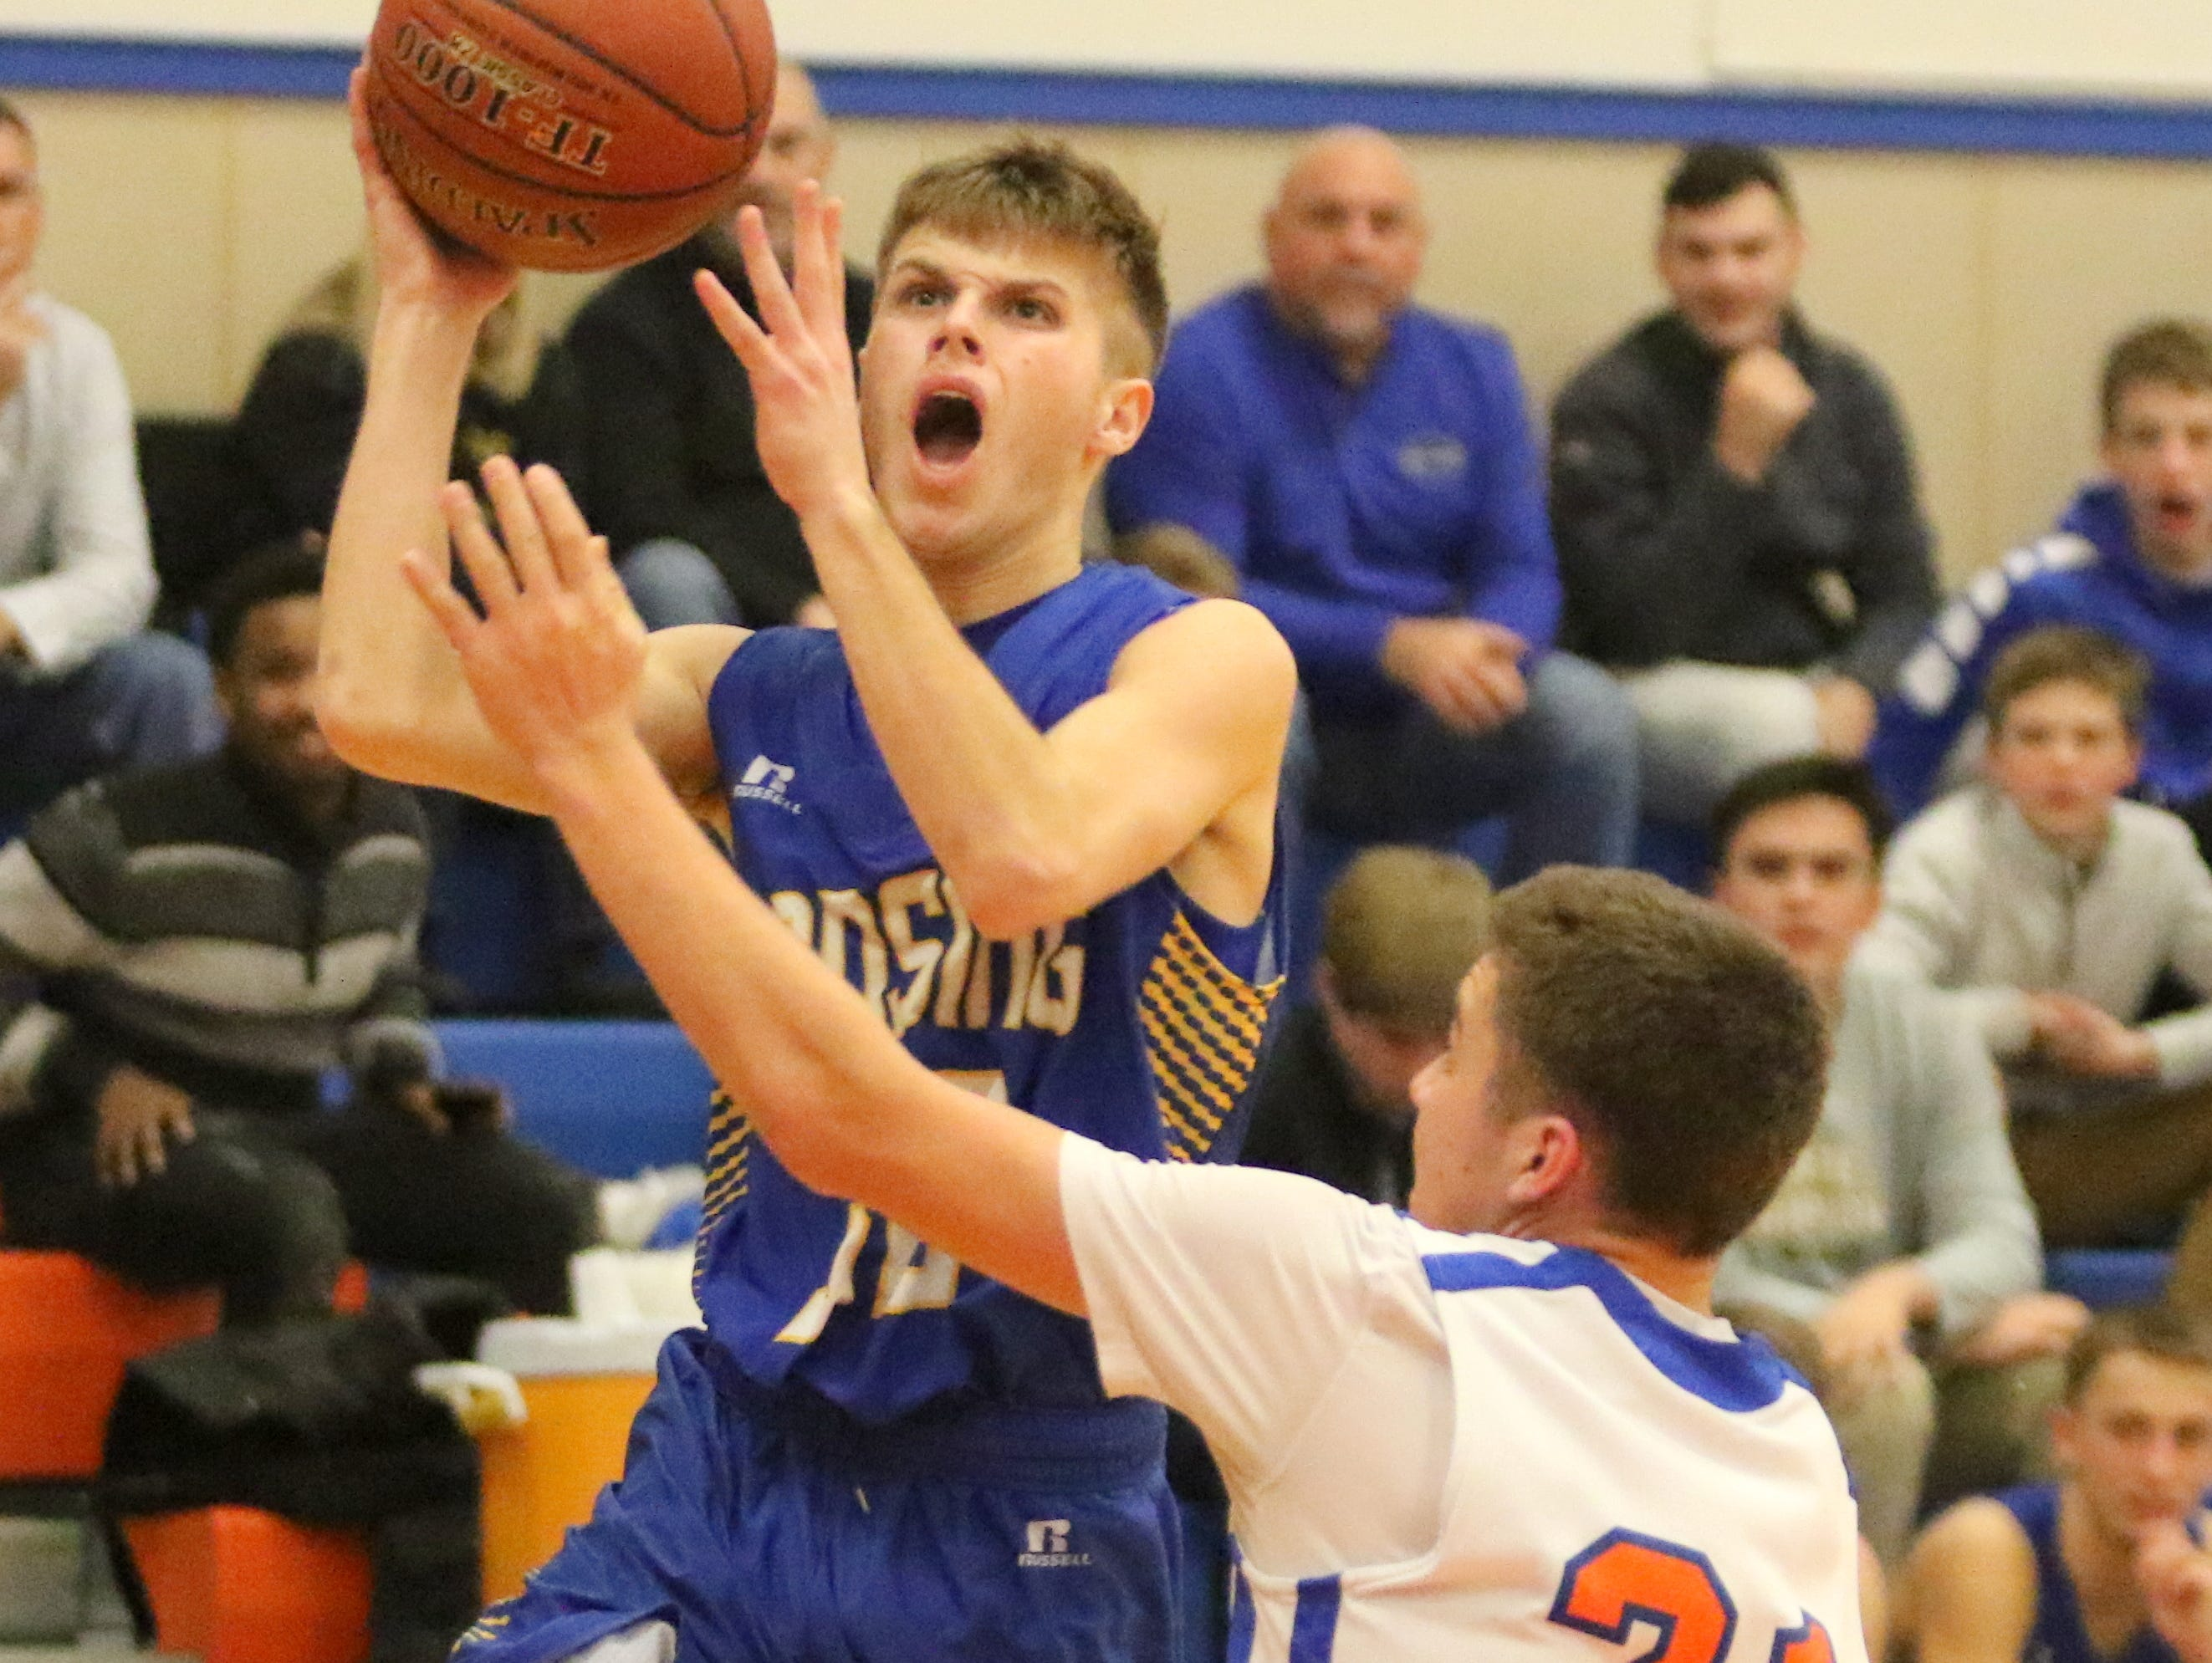 Lansing was a 67-30 winner over Thomas A. Edison in boys basketball Jan. 11, 2019 in Elmira Heights.